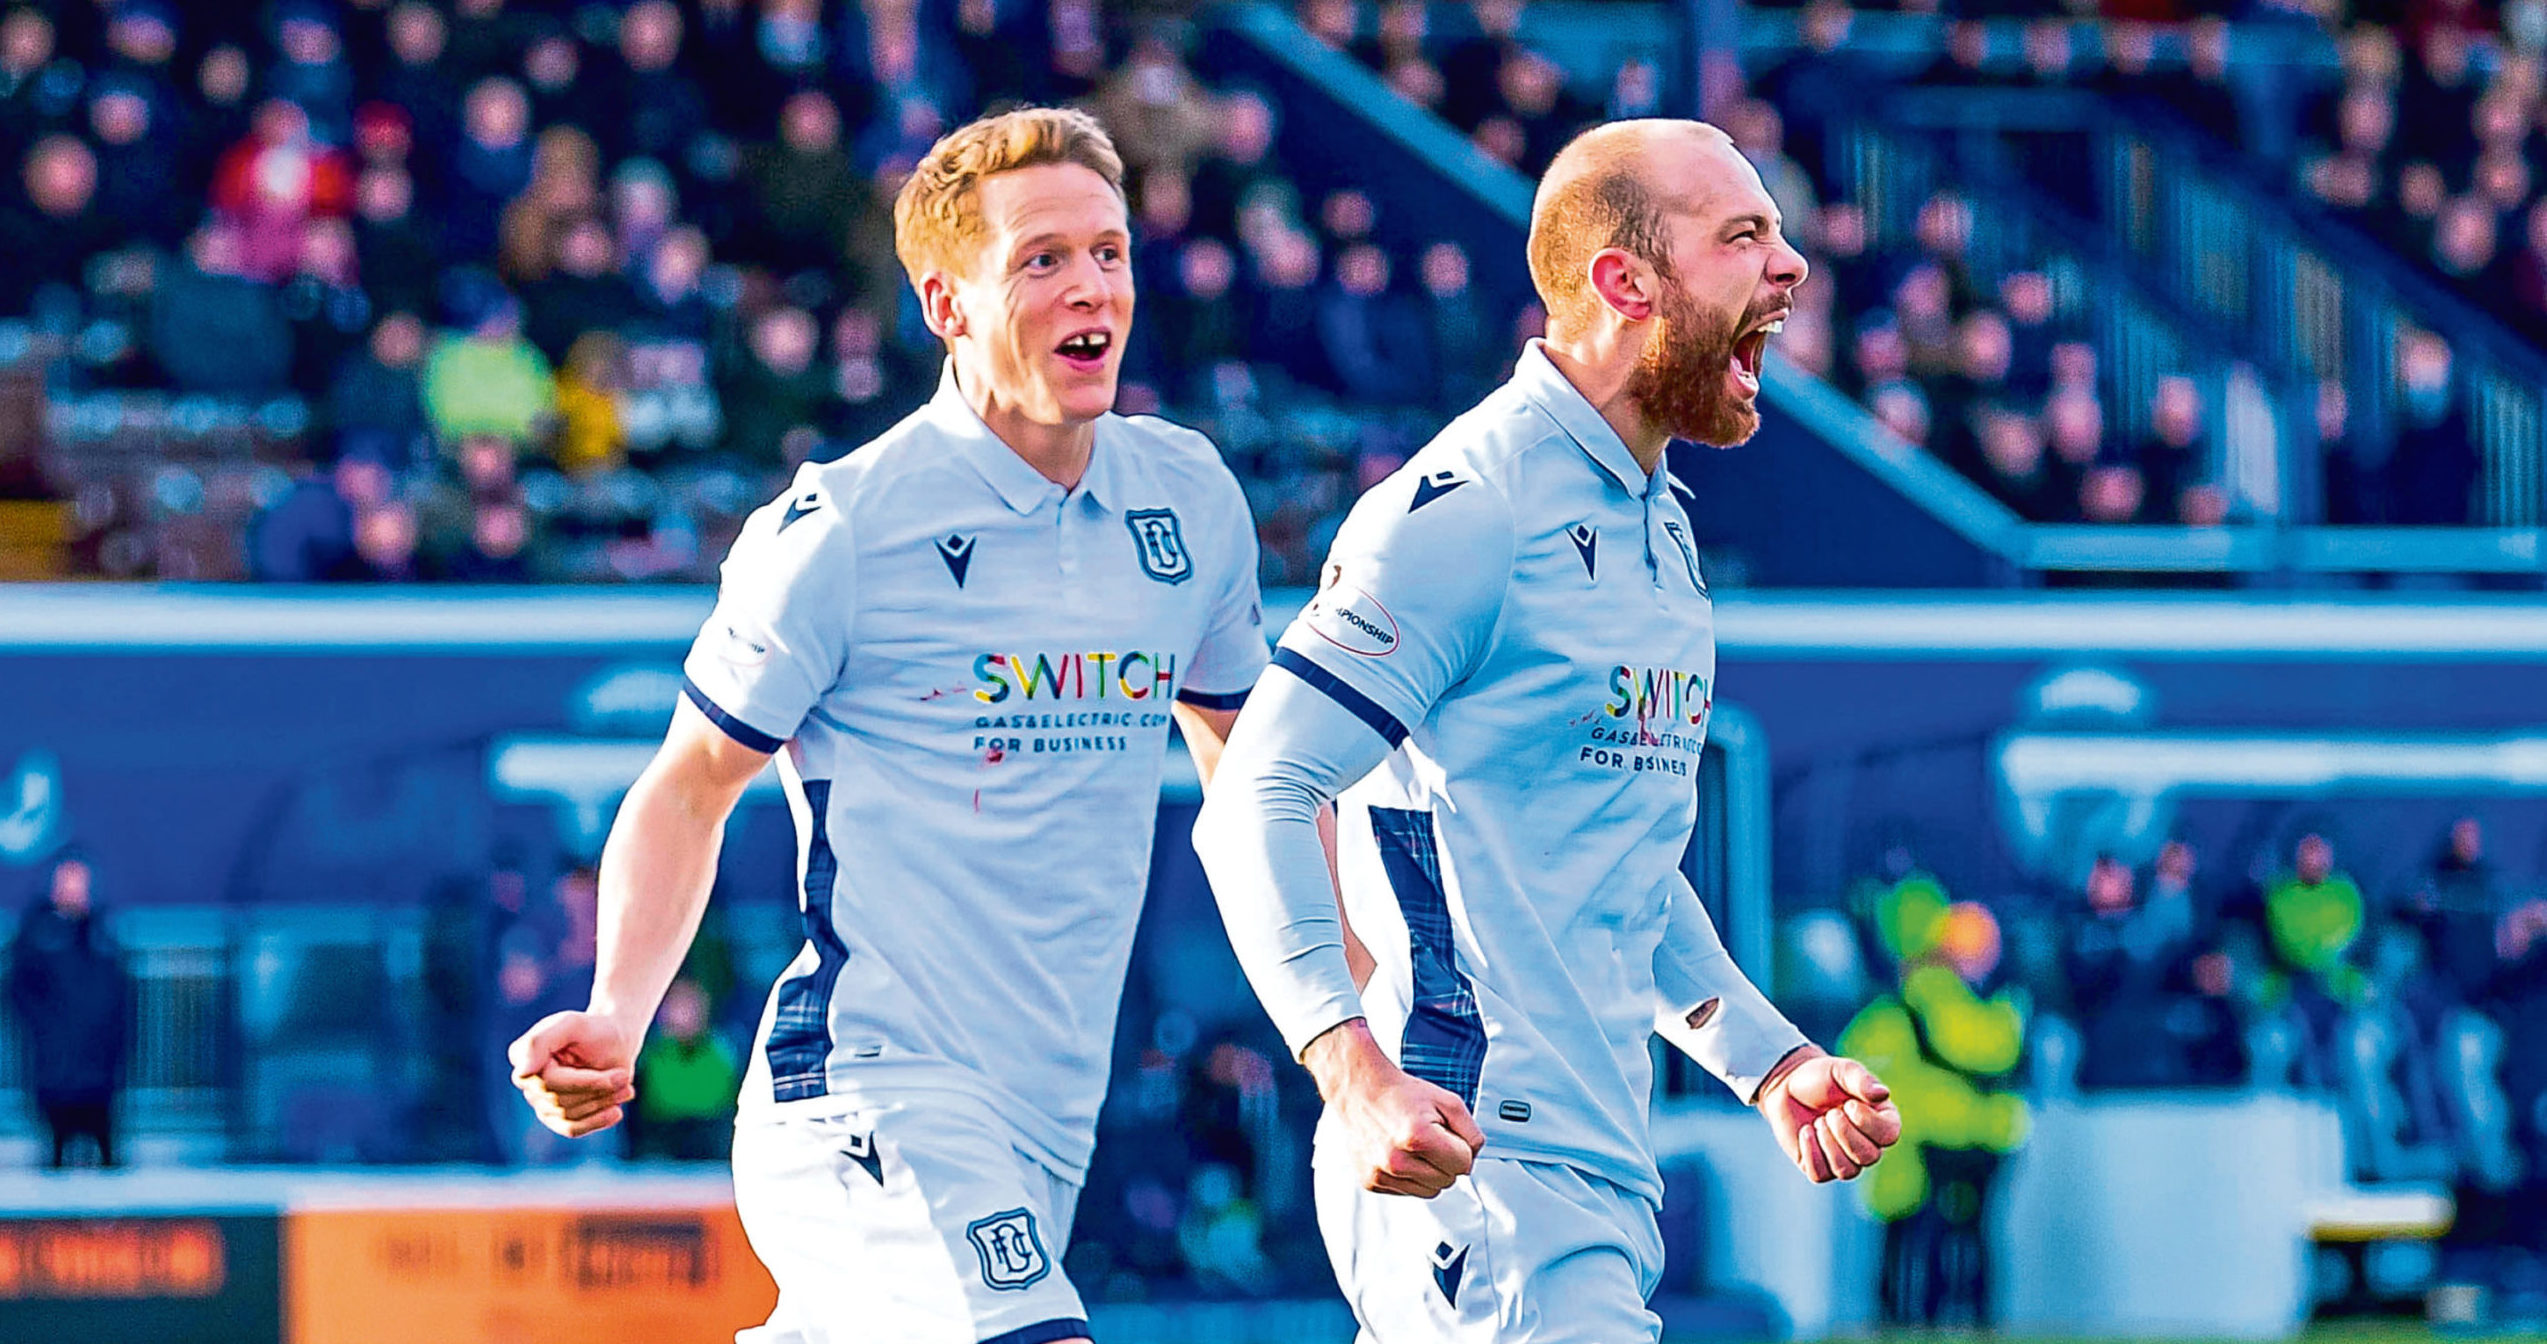 Jordan Forster celebrates after scoring to make it 1-0 to Dundee against Queen of the South.